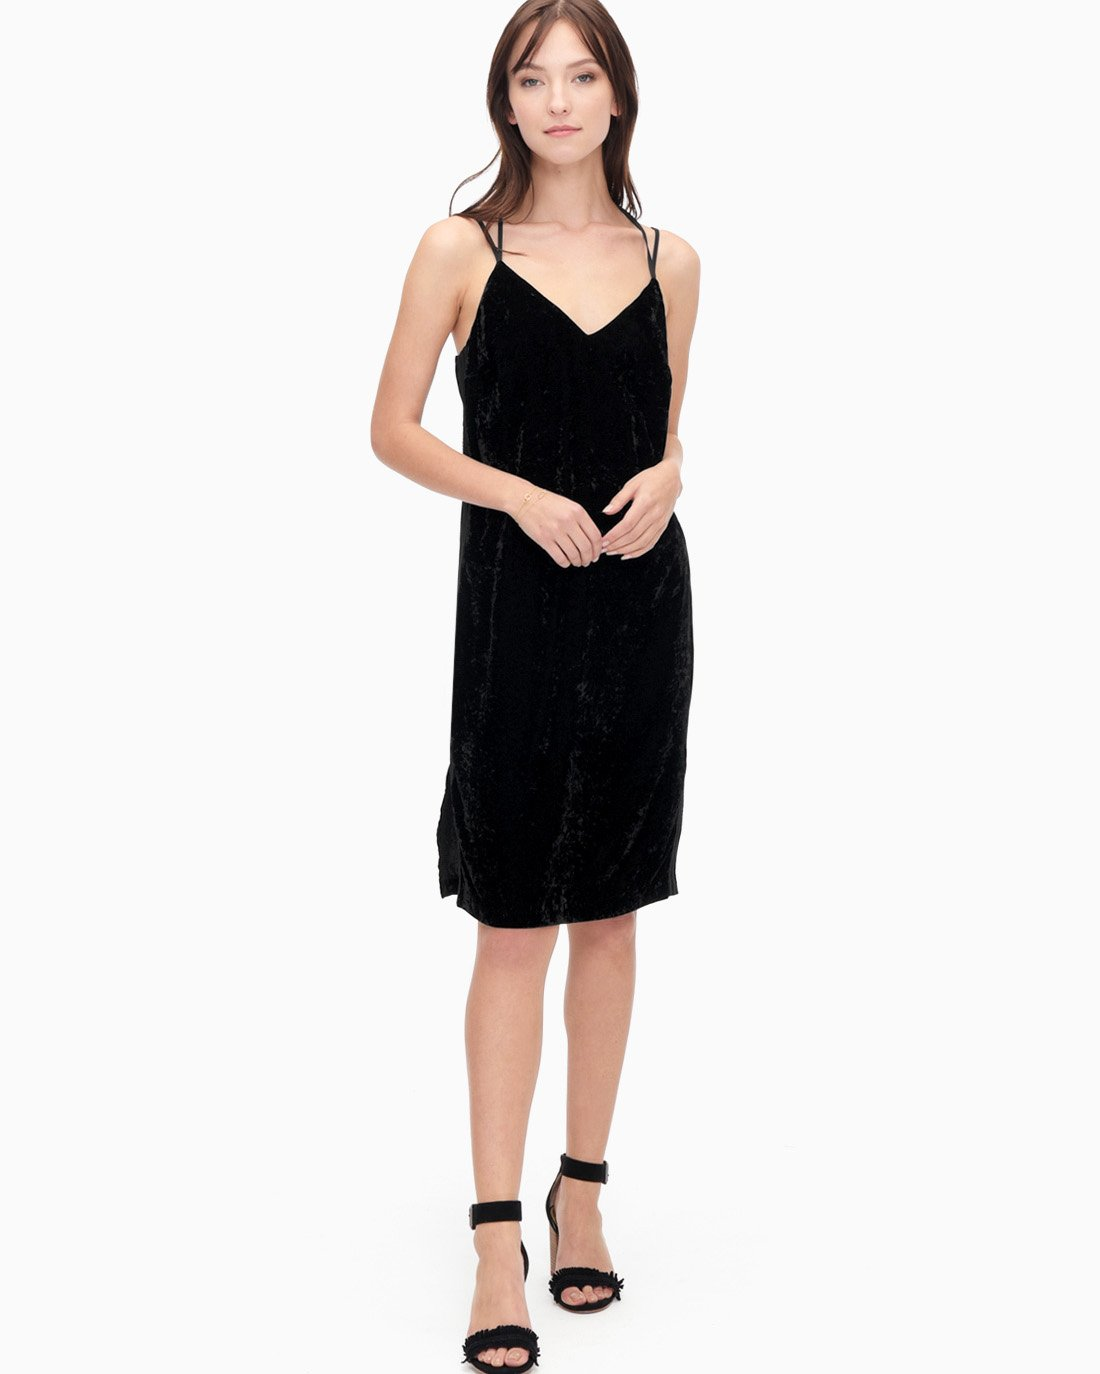 Splendid Velvet Slip Dress, $49 (on sale)